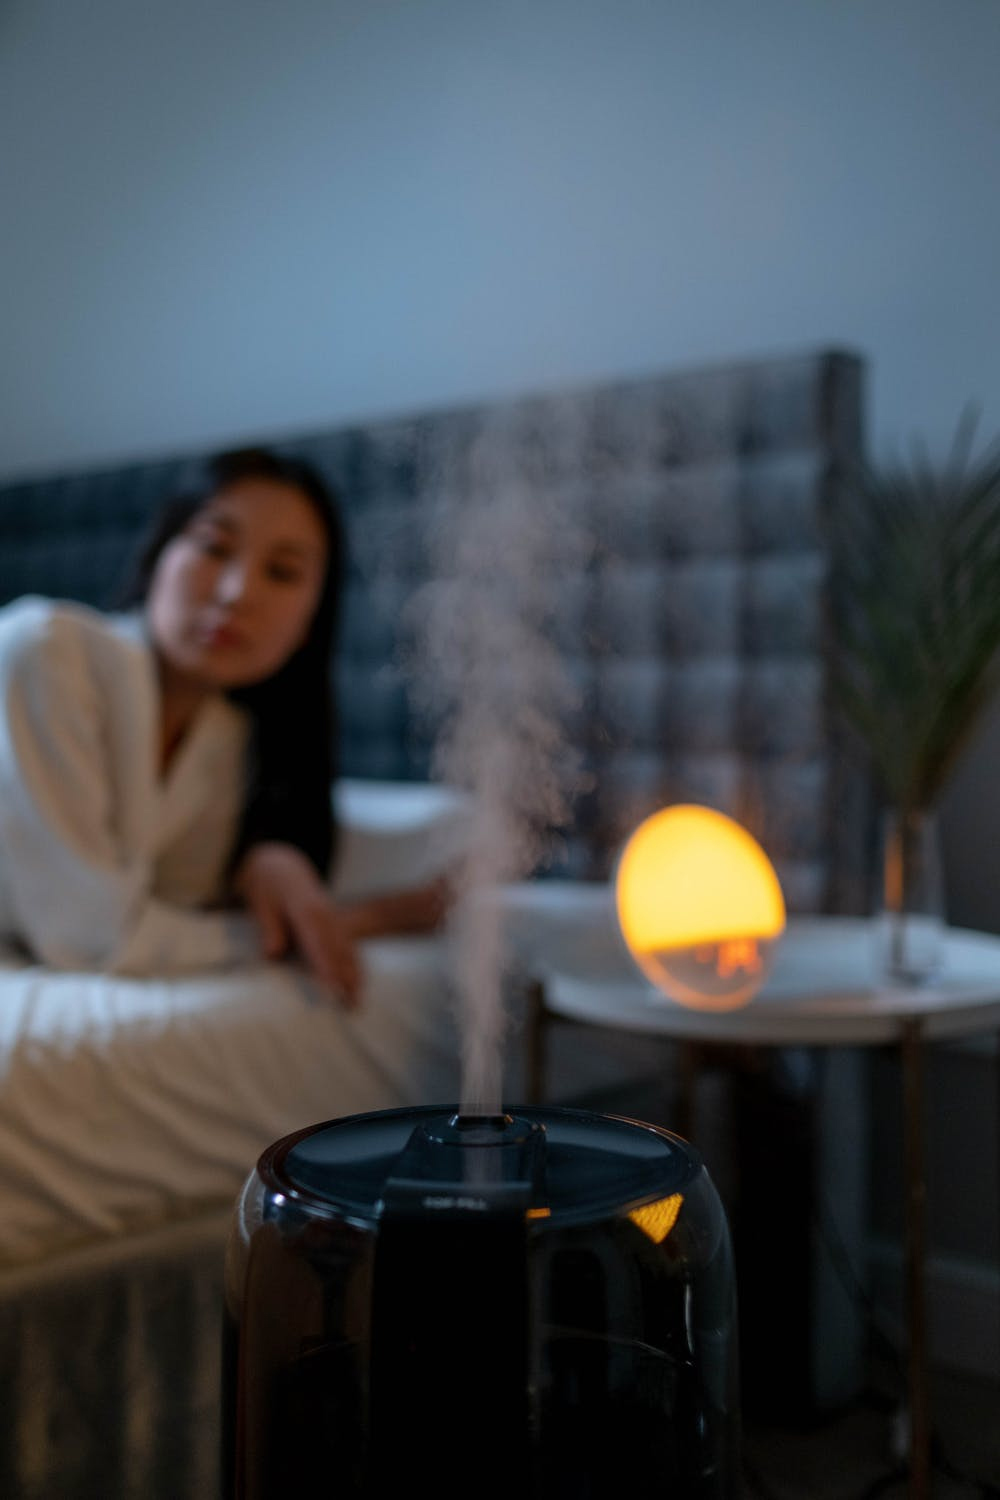 a picture of working humidifier with a woman in the background